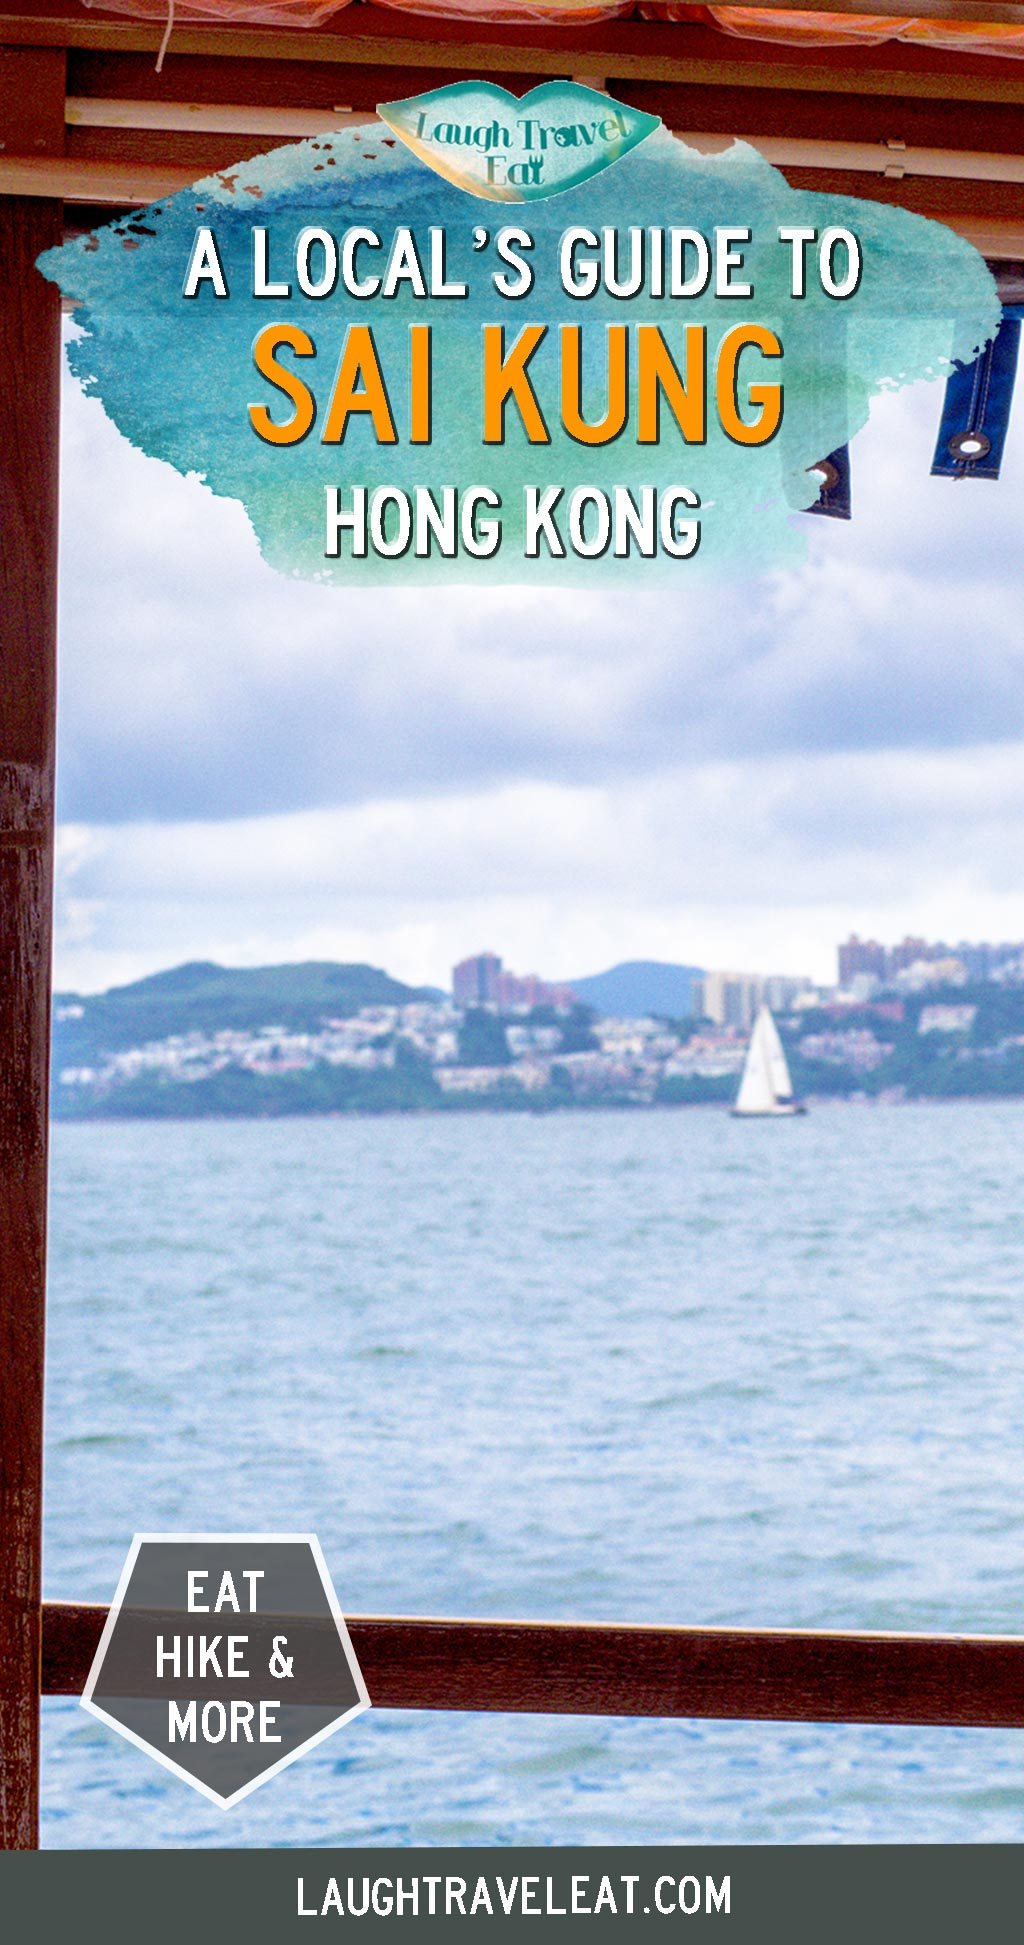 Sai Kung is arguably the most beautiful part of Hong Kong, with stunning beaches, amazing hiking trails, as well as a geopark and many protected marine parks #saikung #hongkong #hiking #watersports